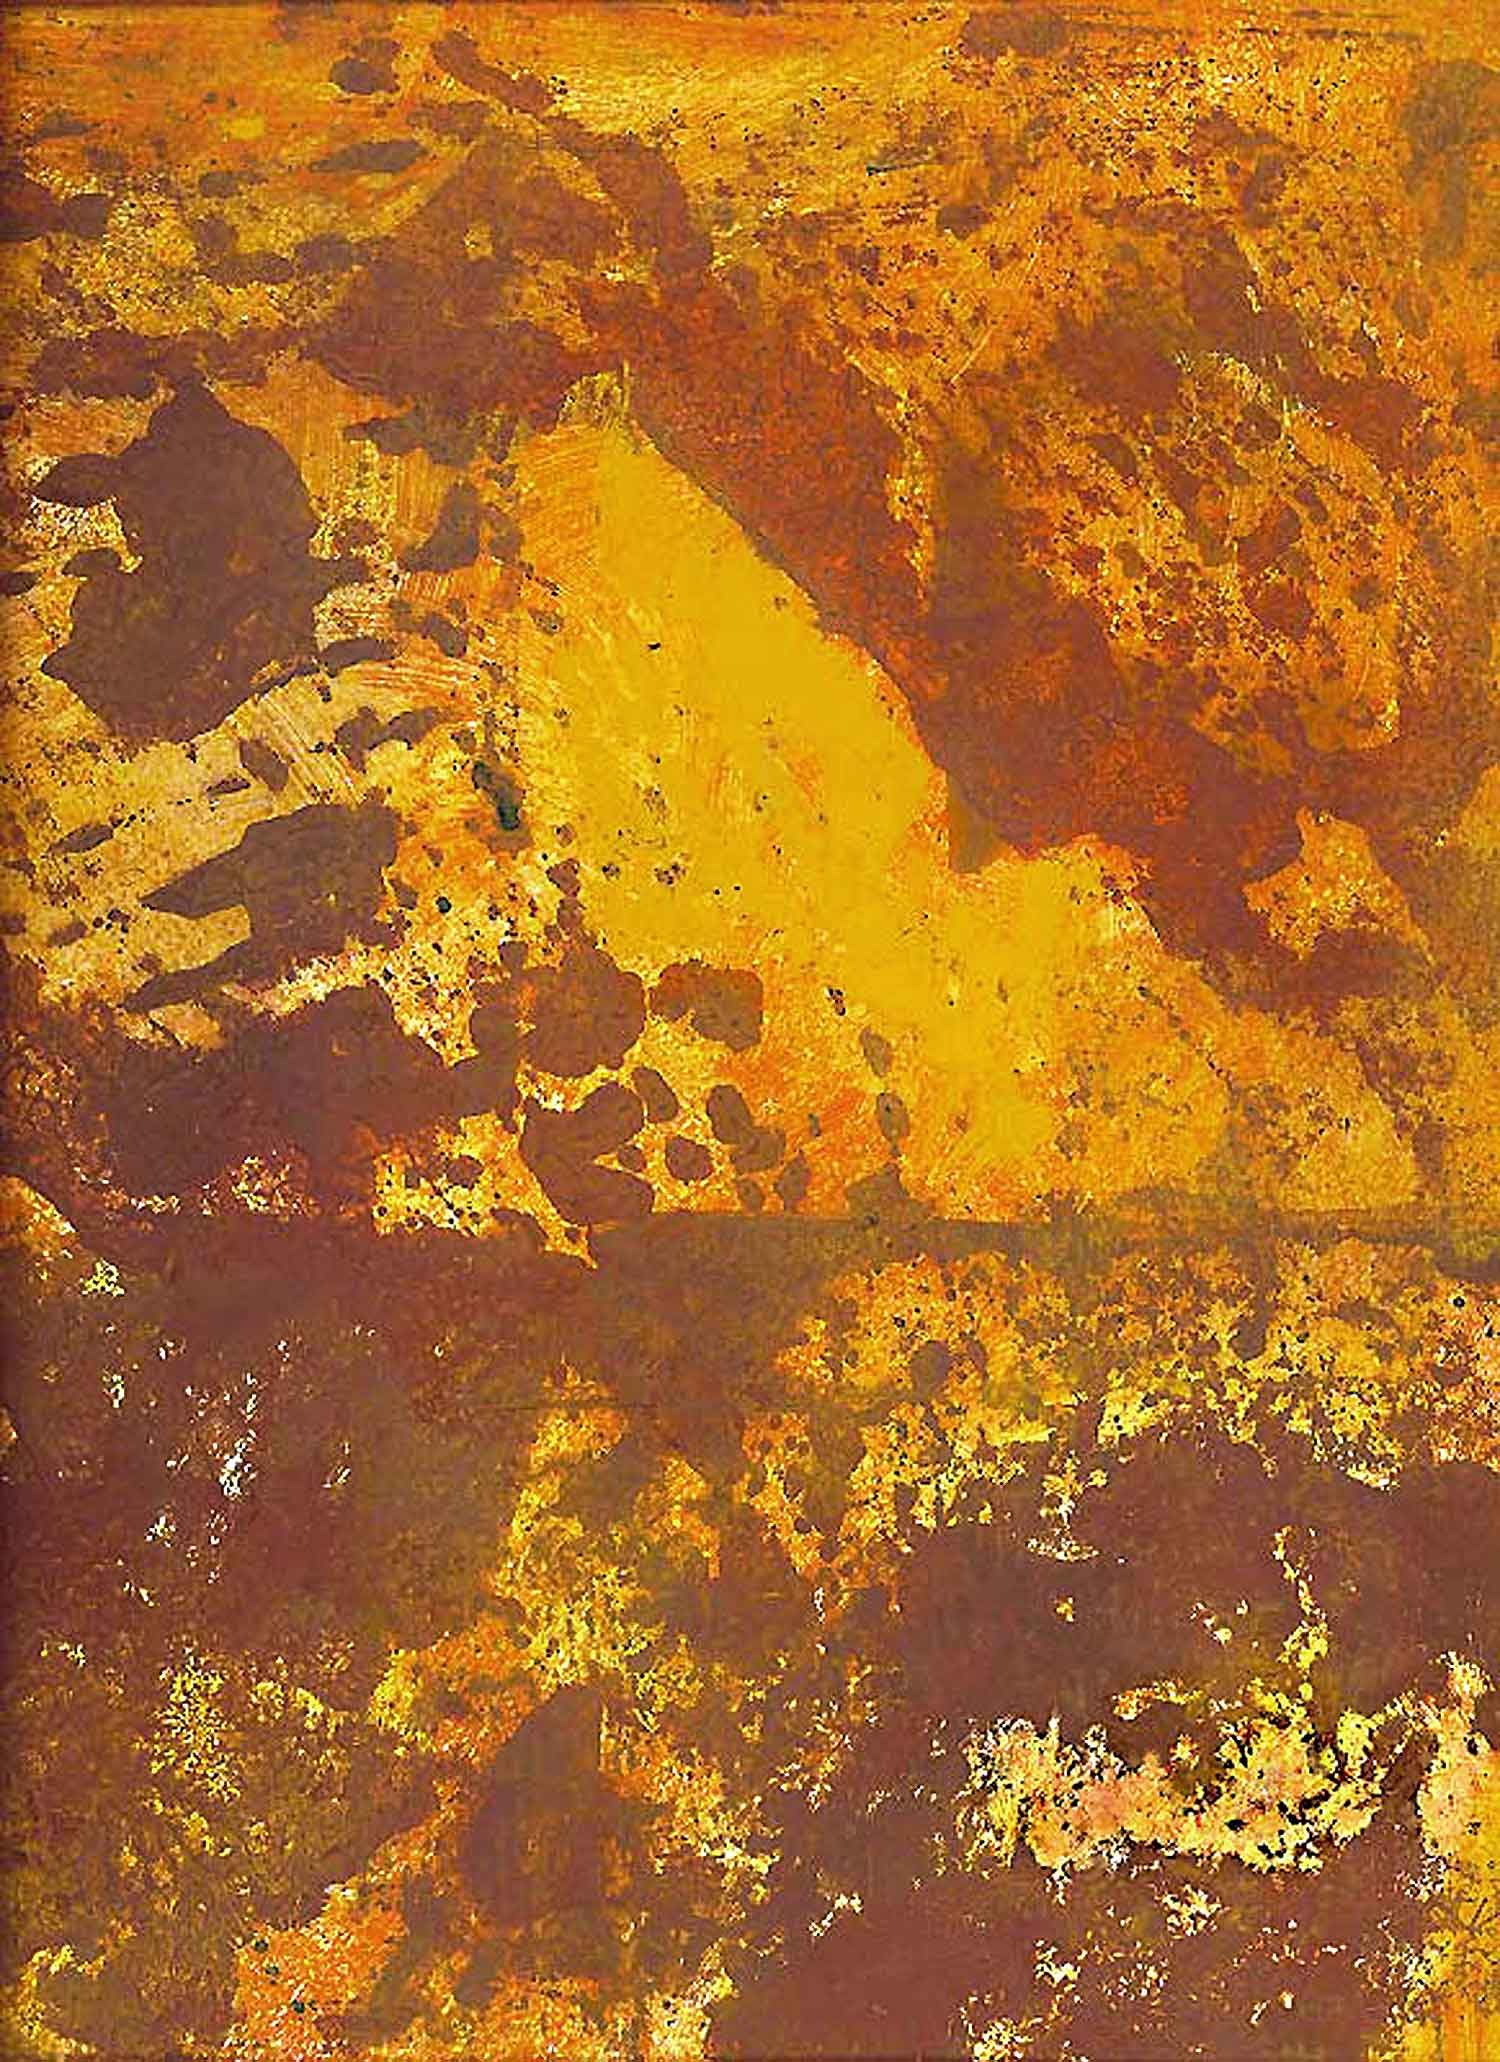 night and day - 172 x 122 cm - acrylic, pigment and glue on vinyl - 2002